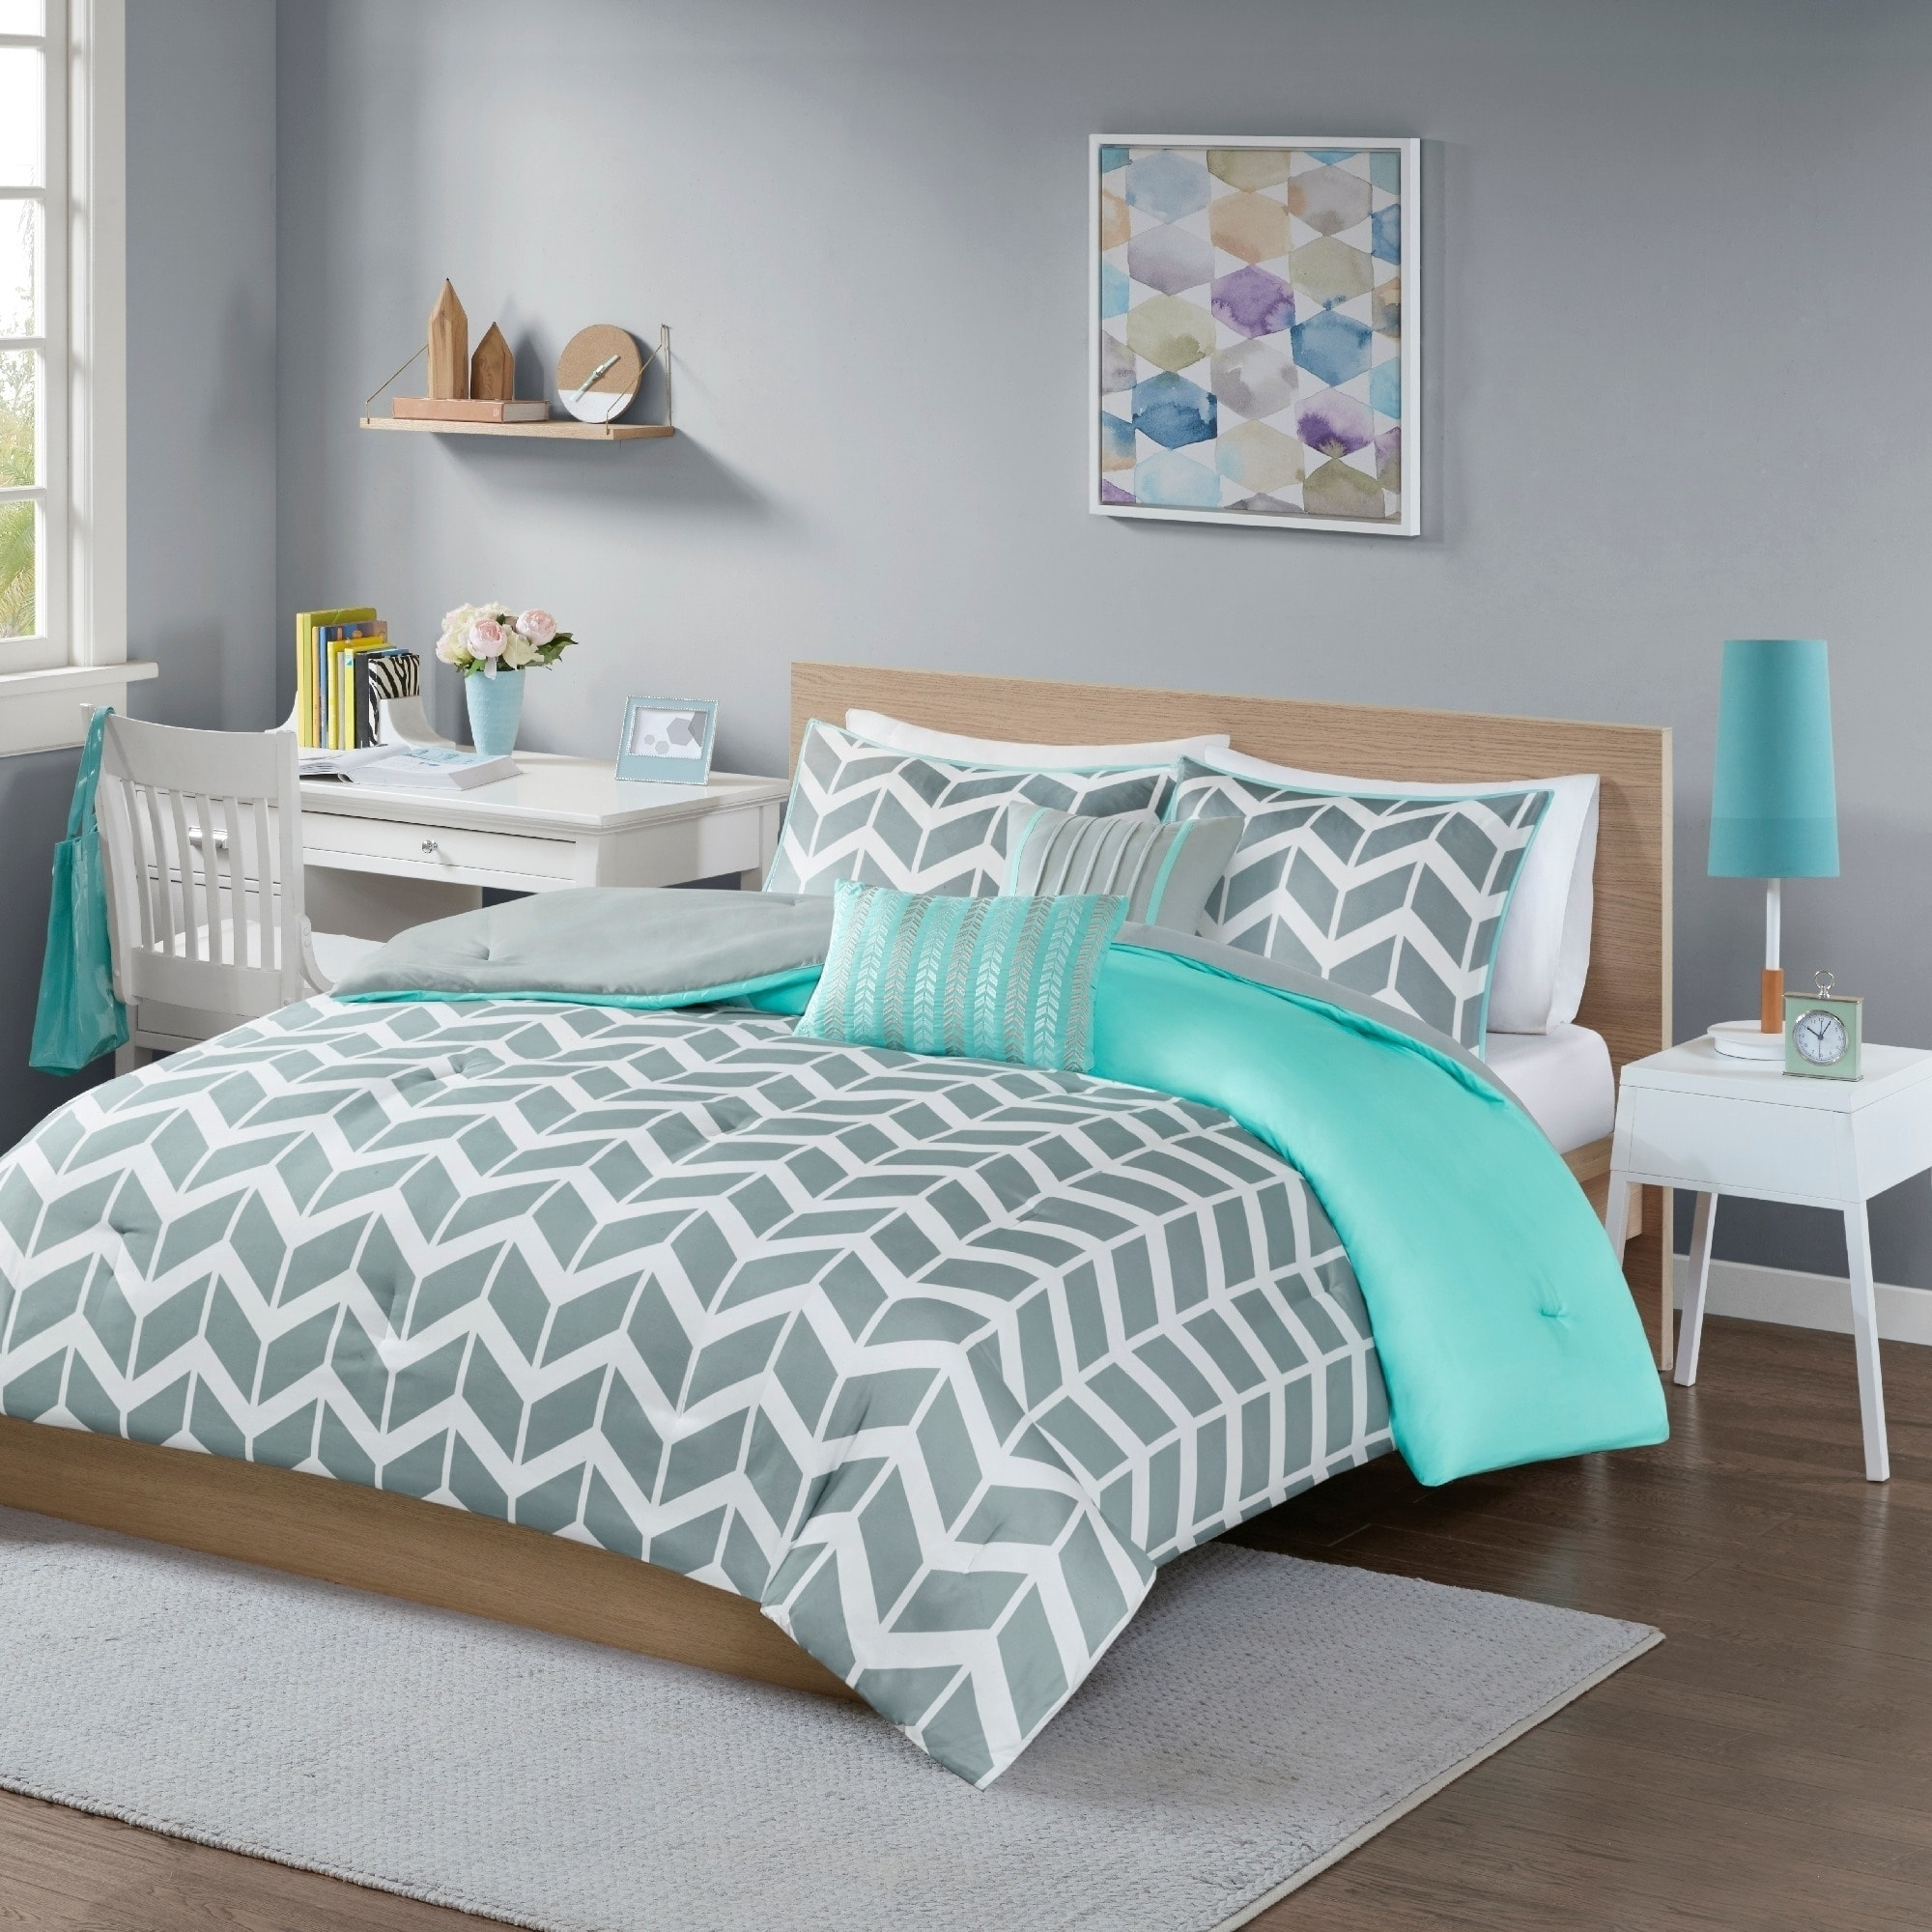 in beds size bedspreads solid color bed target paint blue bag sets bedding twin comforter teal and comforters quilt grey dark medium a of set brown walmart light